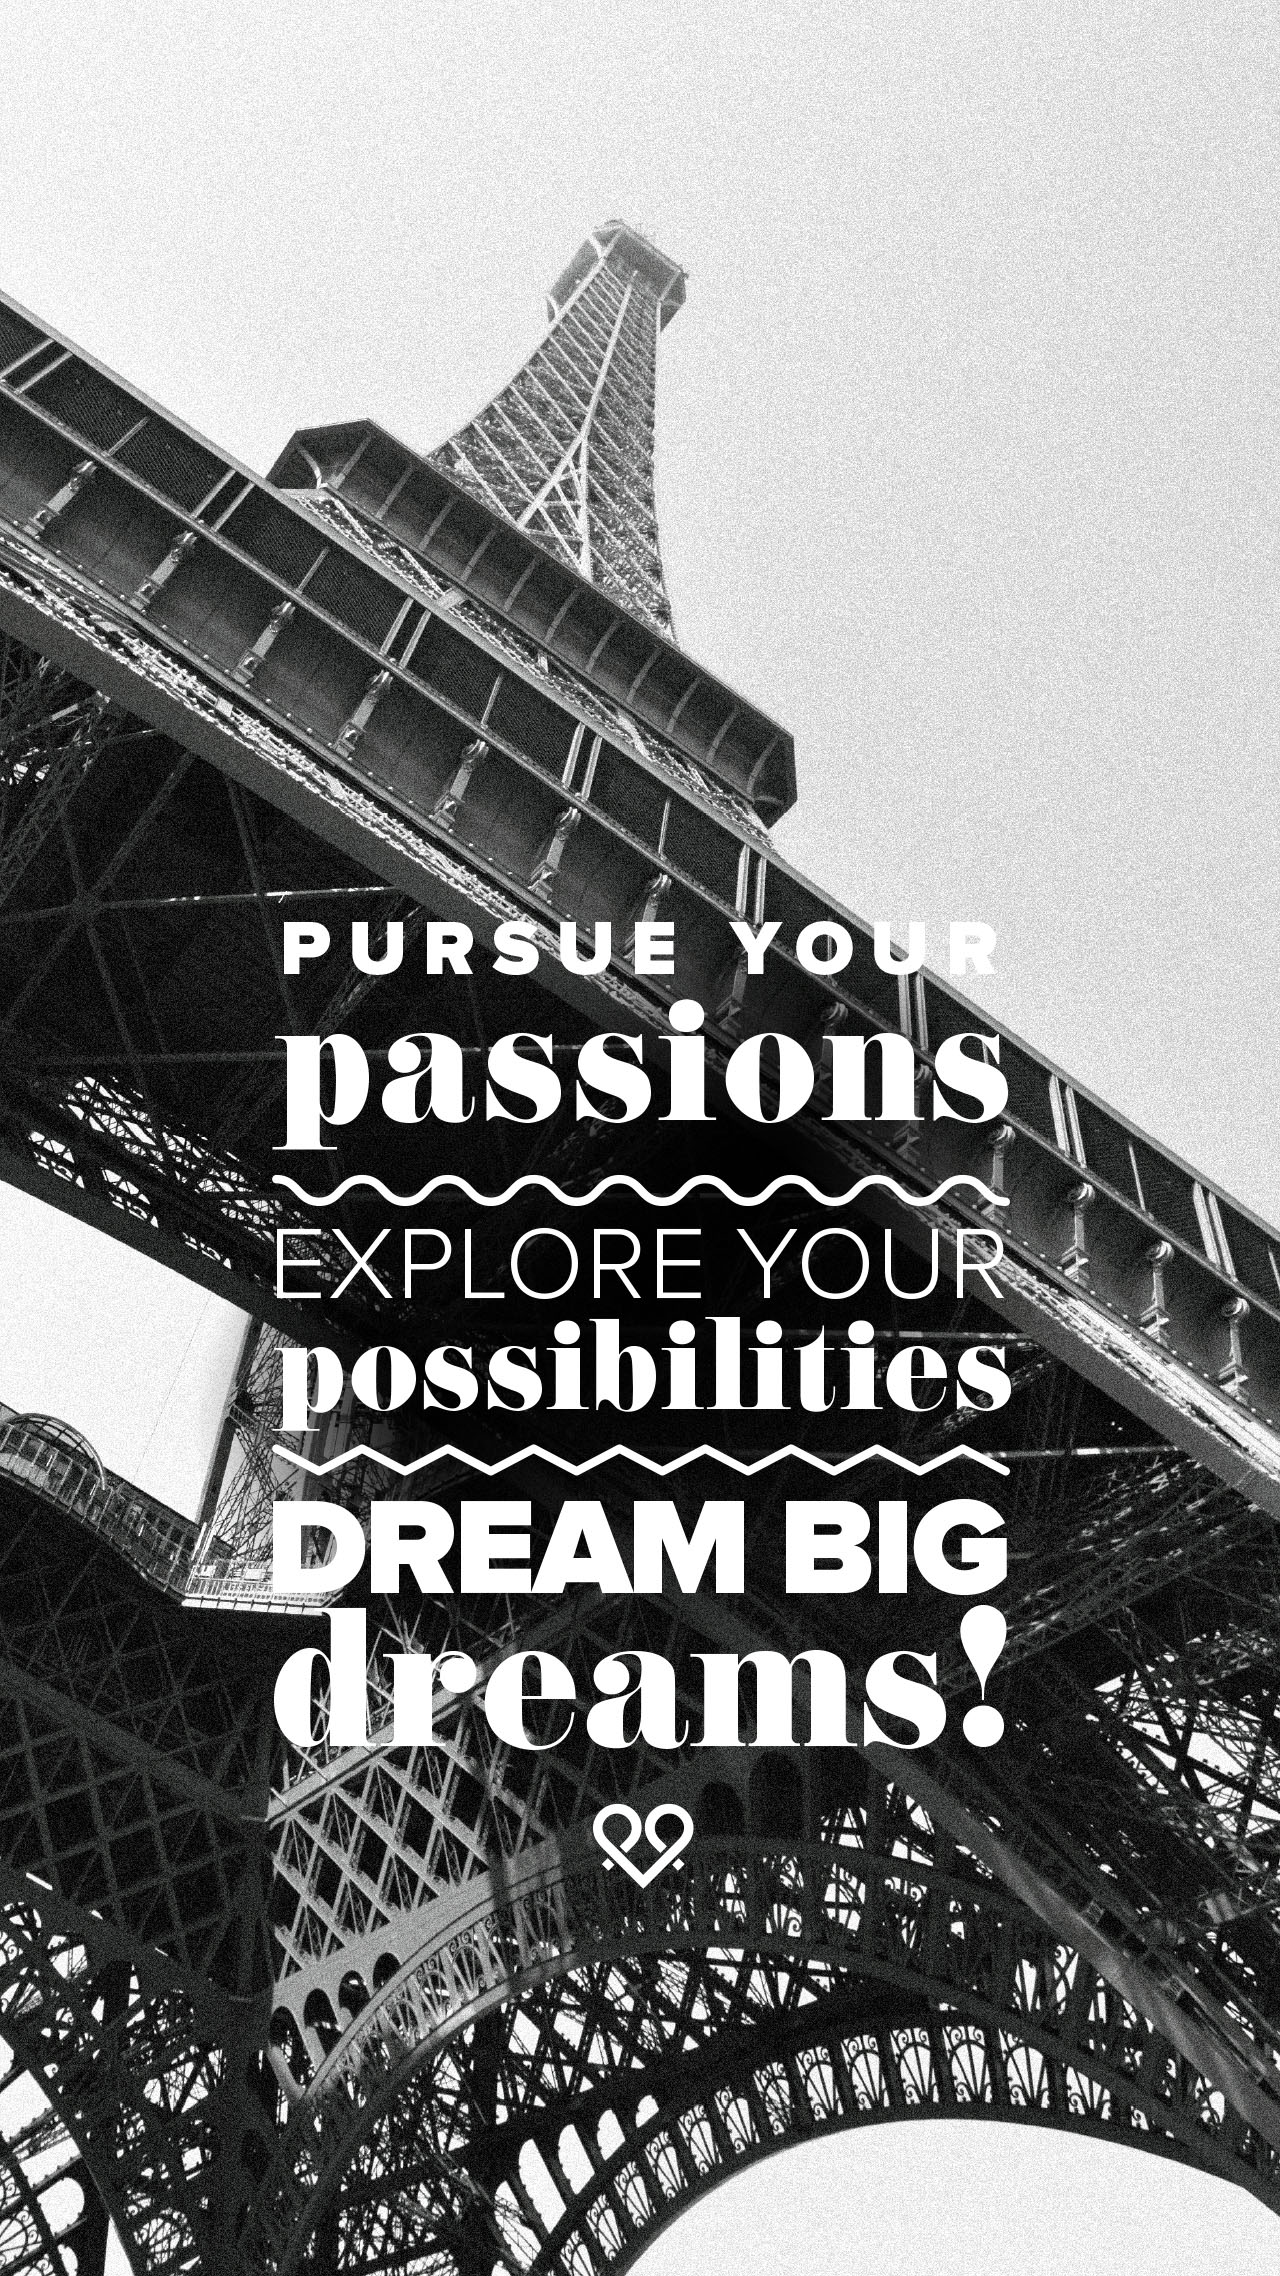 KeithAbraham_PursueYourPassion_paris